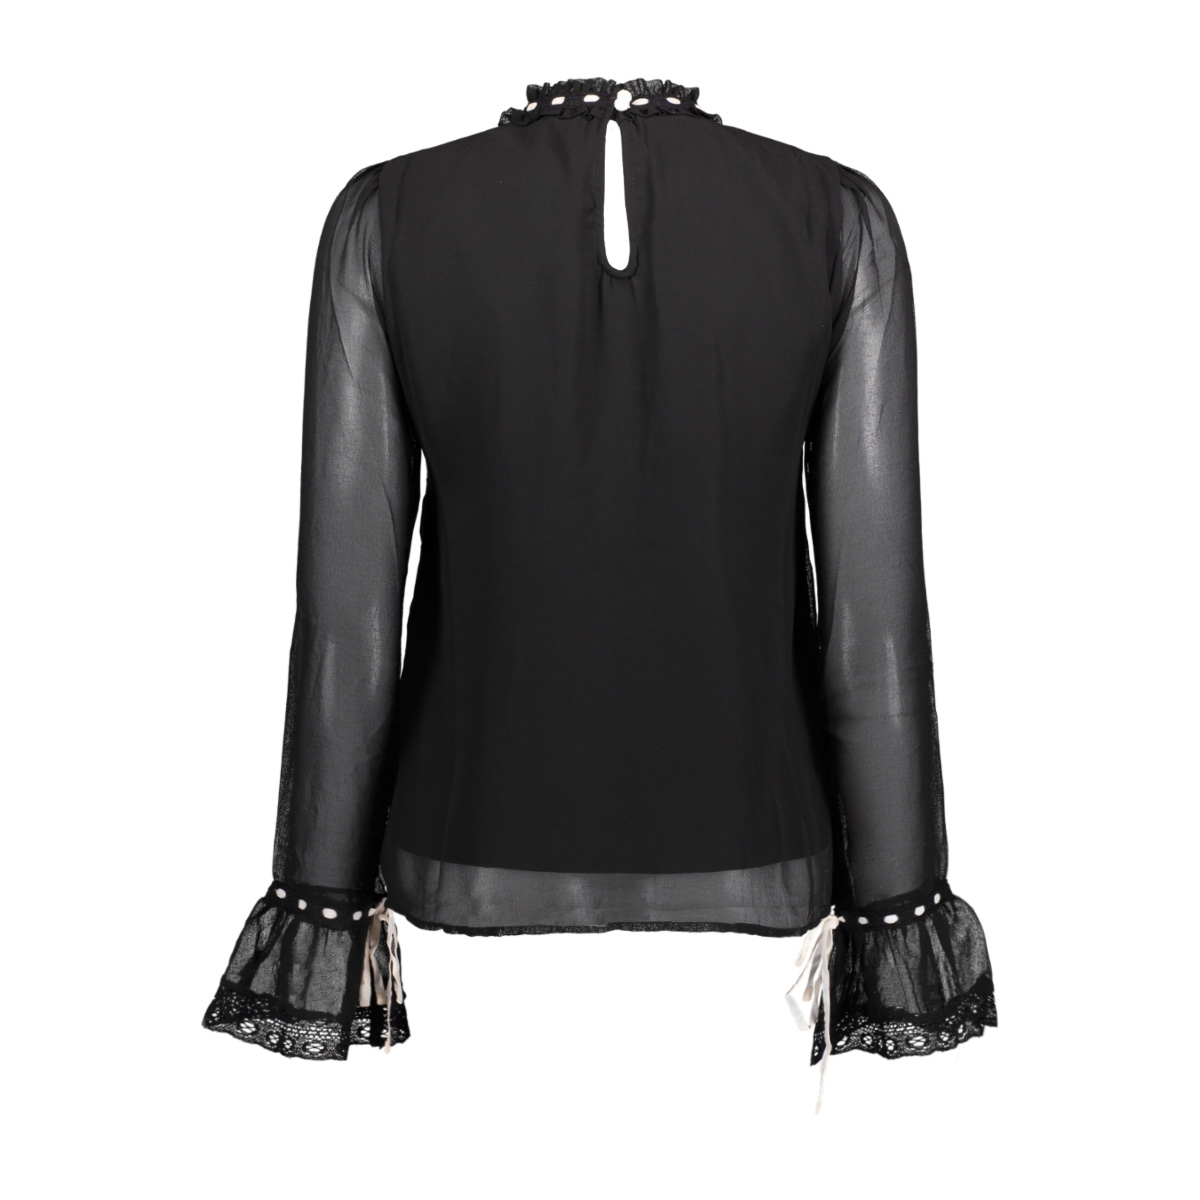 vmsami l/s shirt d2-8 10190452 vero moda blouse black/snow white